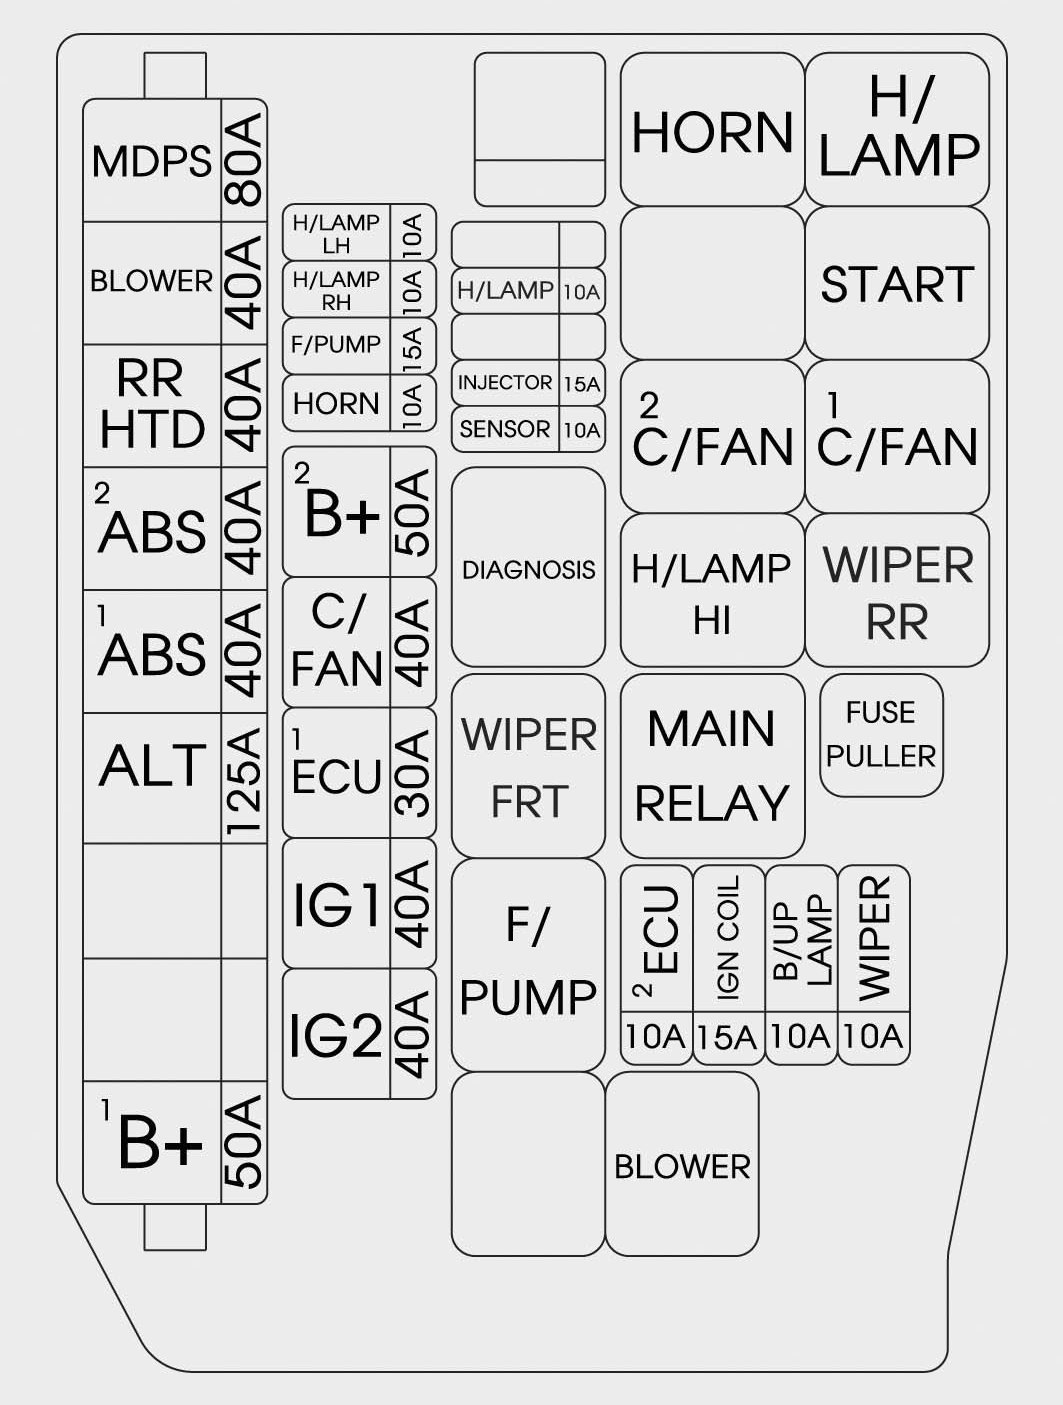 2014 Hyundai Sonata Fuse Diagram Archive Of Automotive Wiring Chrysler Town And Country Box 1999 Auto Electrical Rh Edu Fr Wholefoodaction Org Uk Stereo